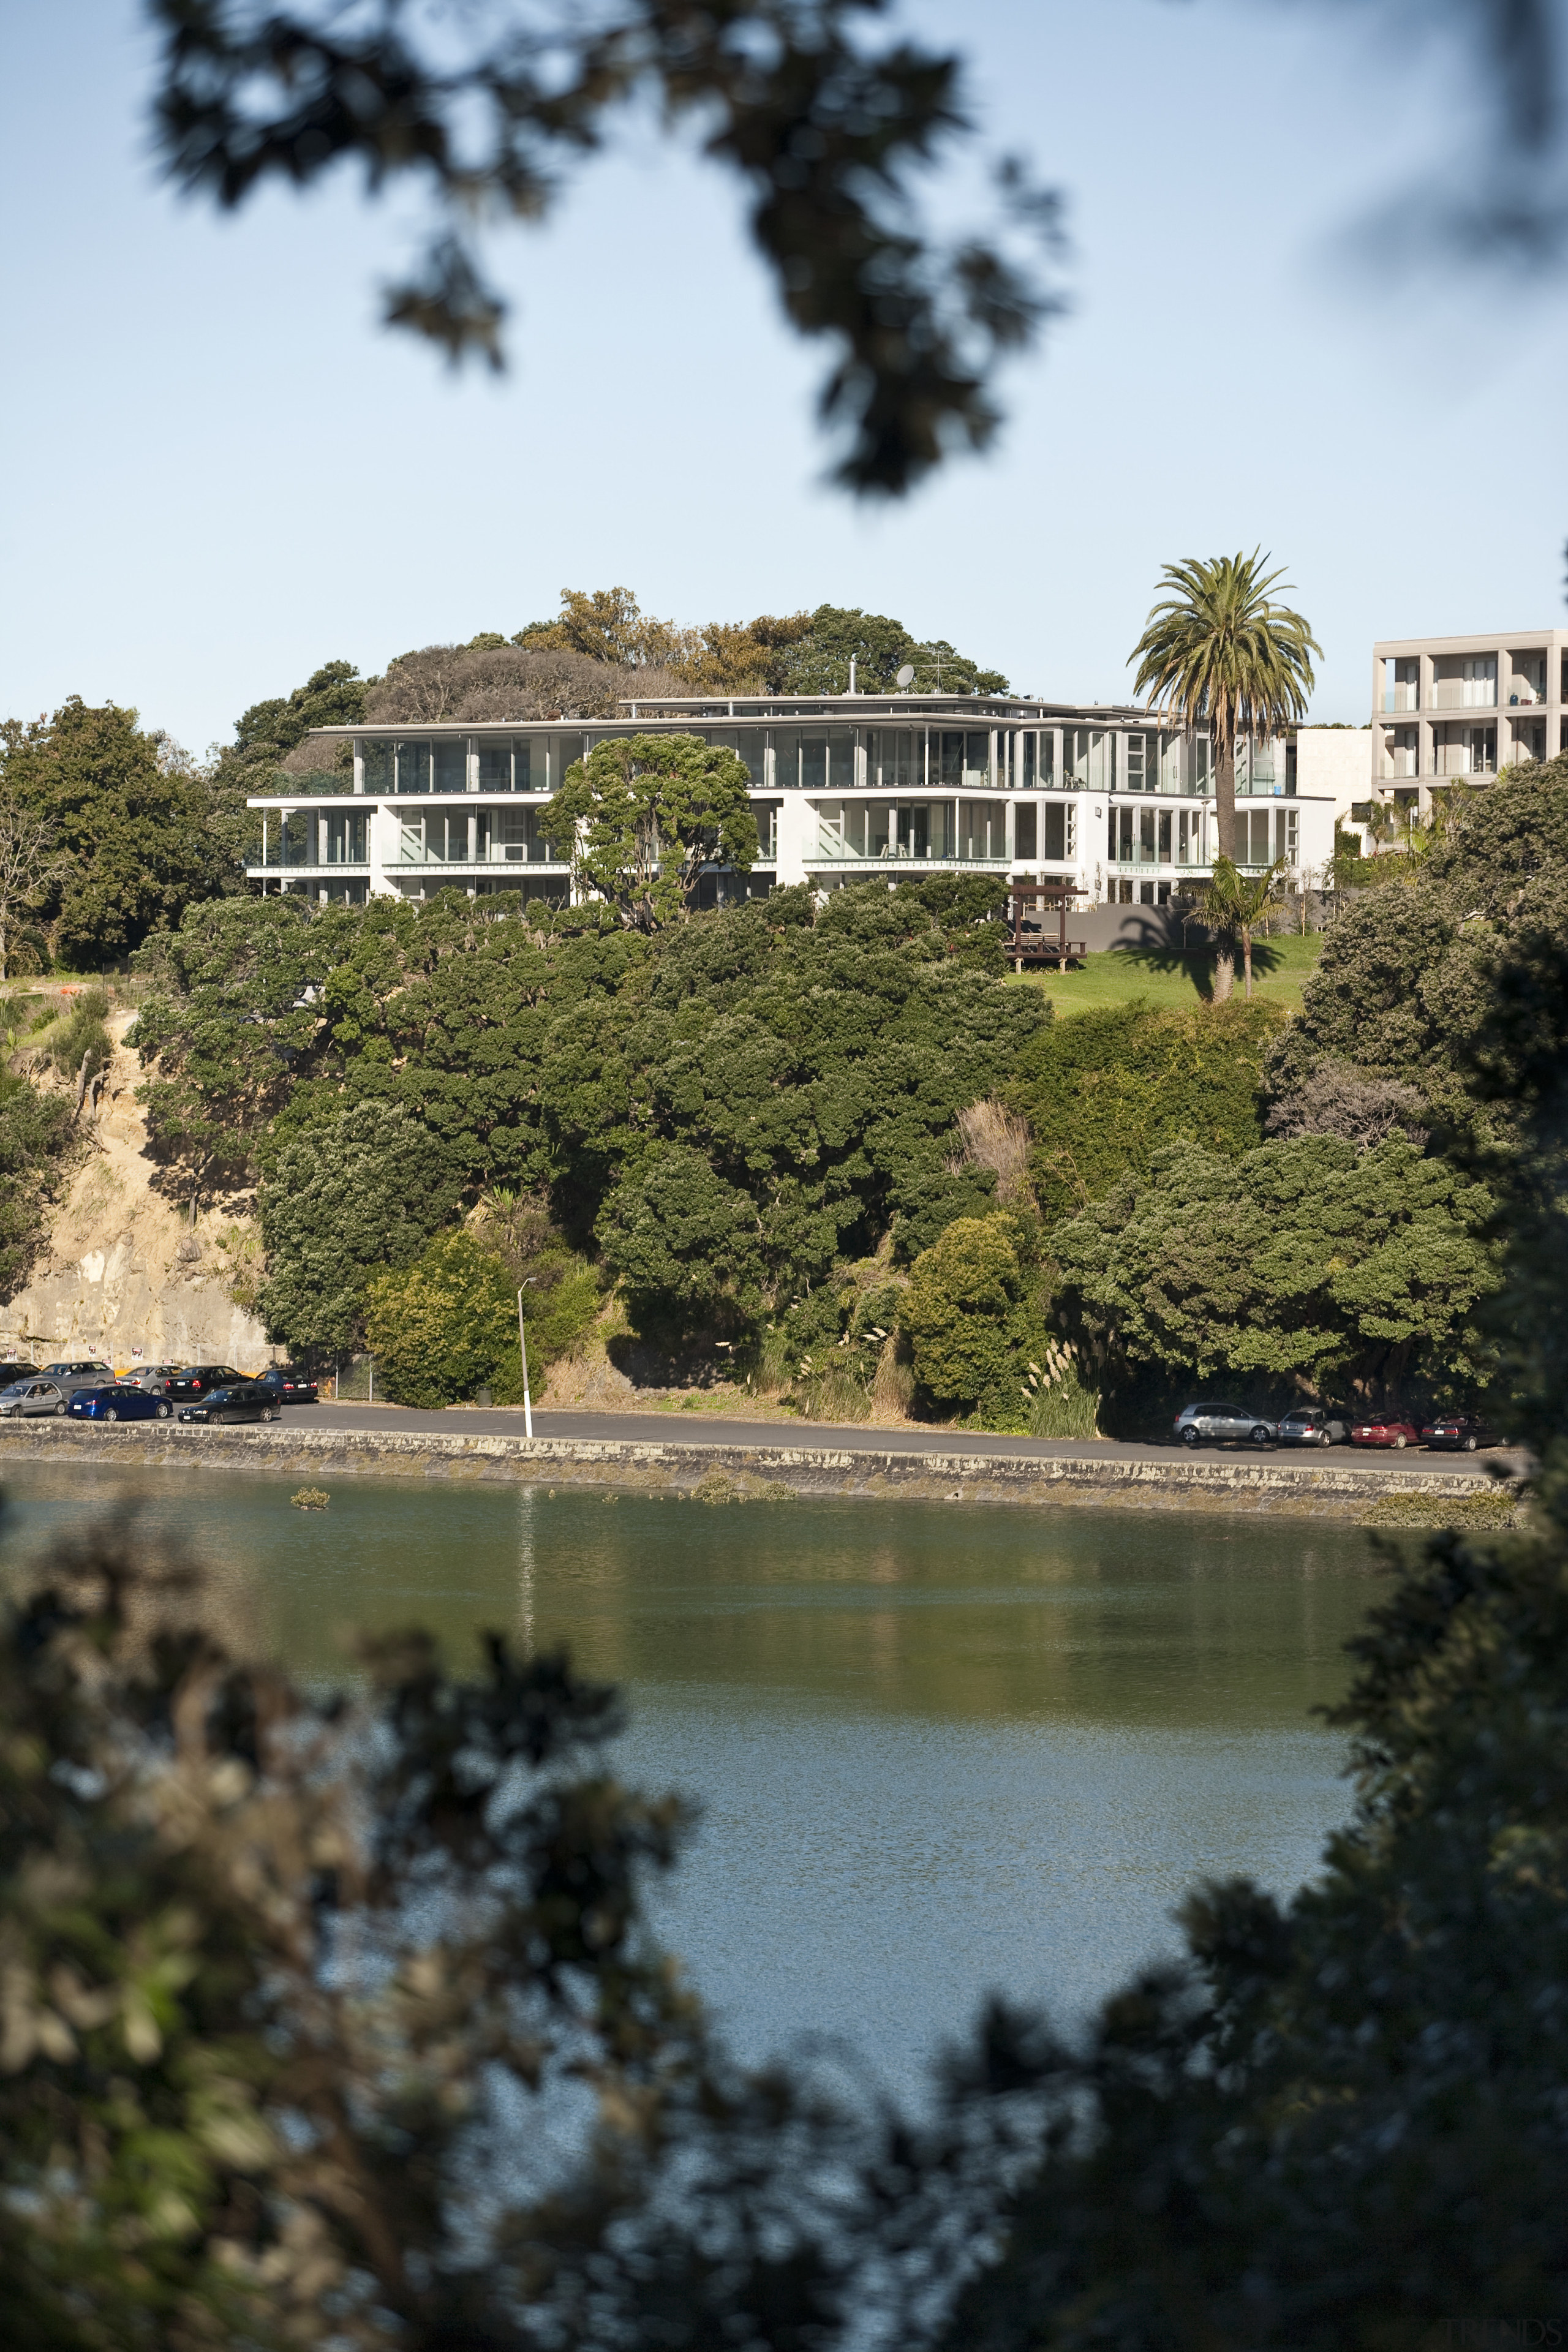 View of a large apartment development in Auckland city, estate, garden, house, lake, leaf, nature, plant, reflection, sky, tourist attraction, tree, water, brown